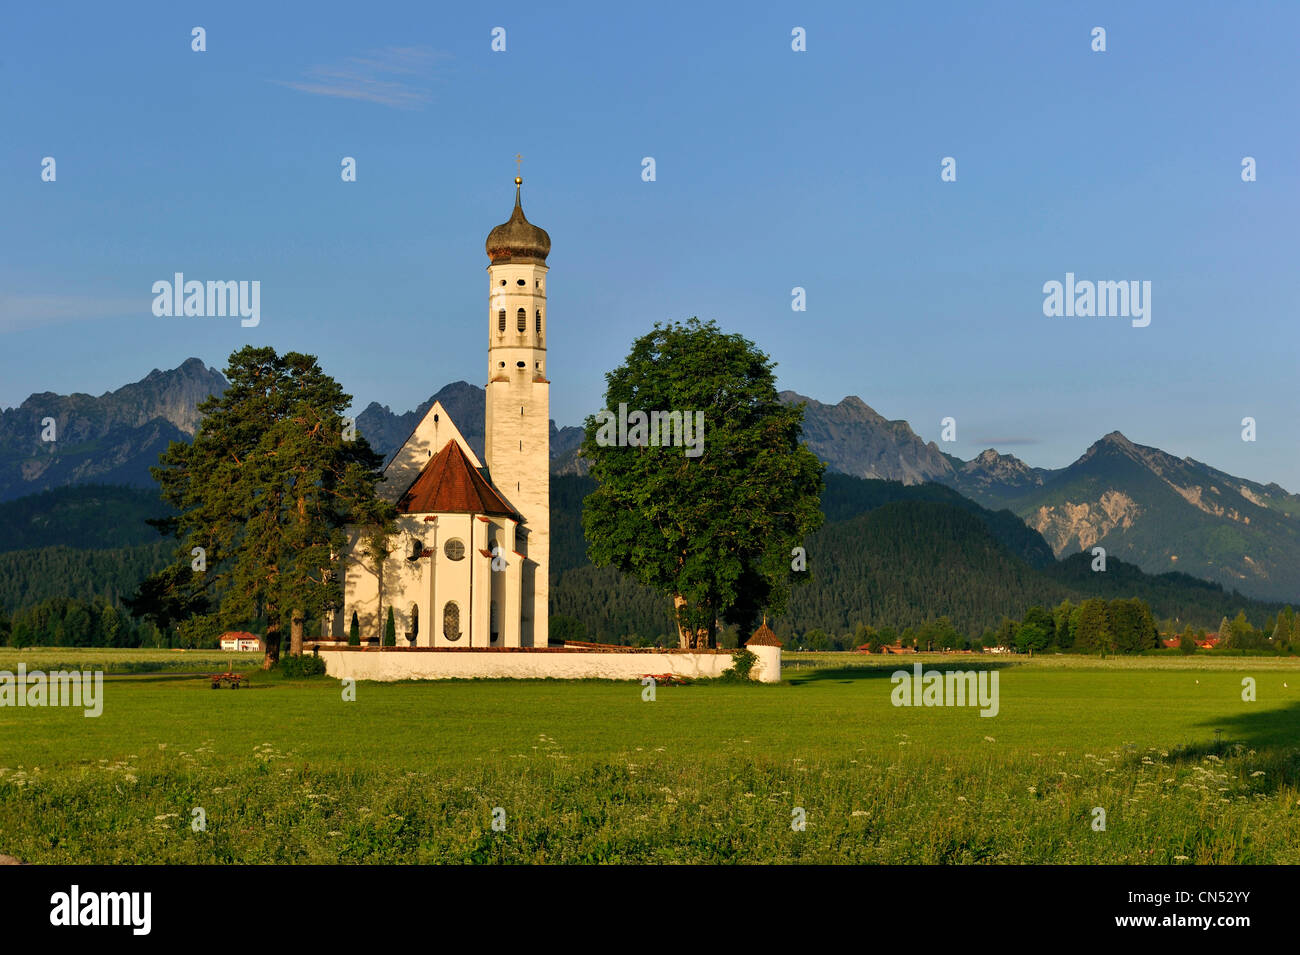 Germany, Bavaria, Schwangau, St Coloman church - Stock Image